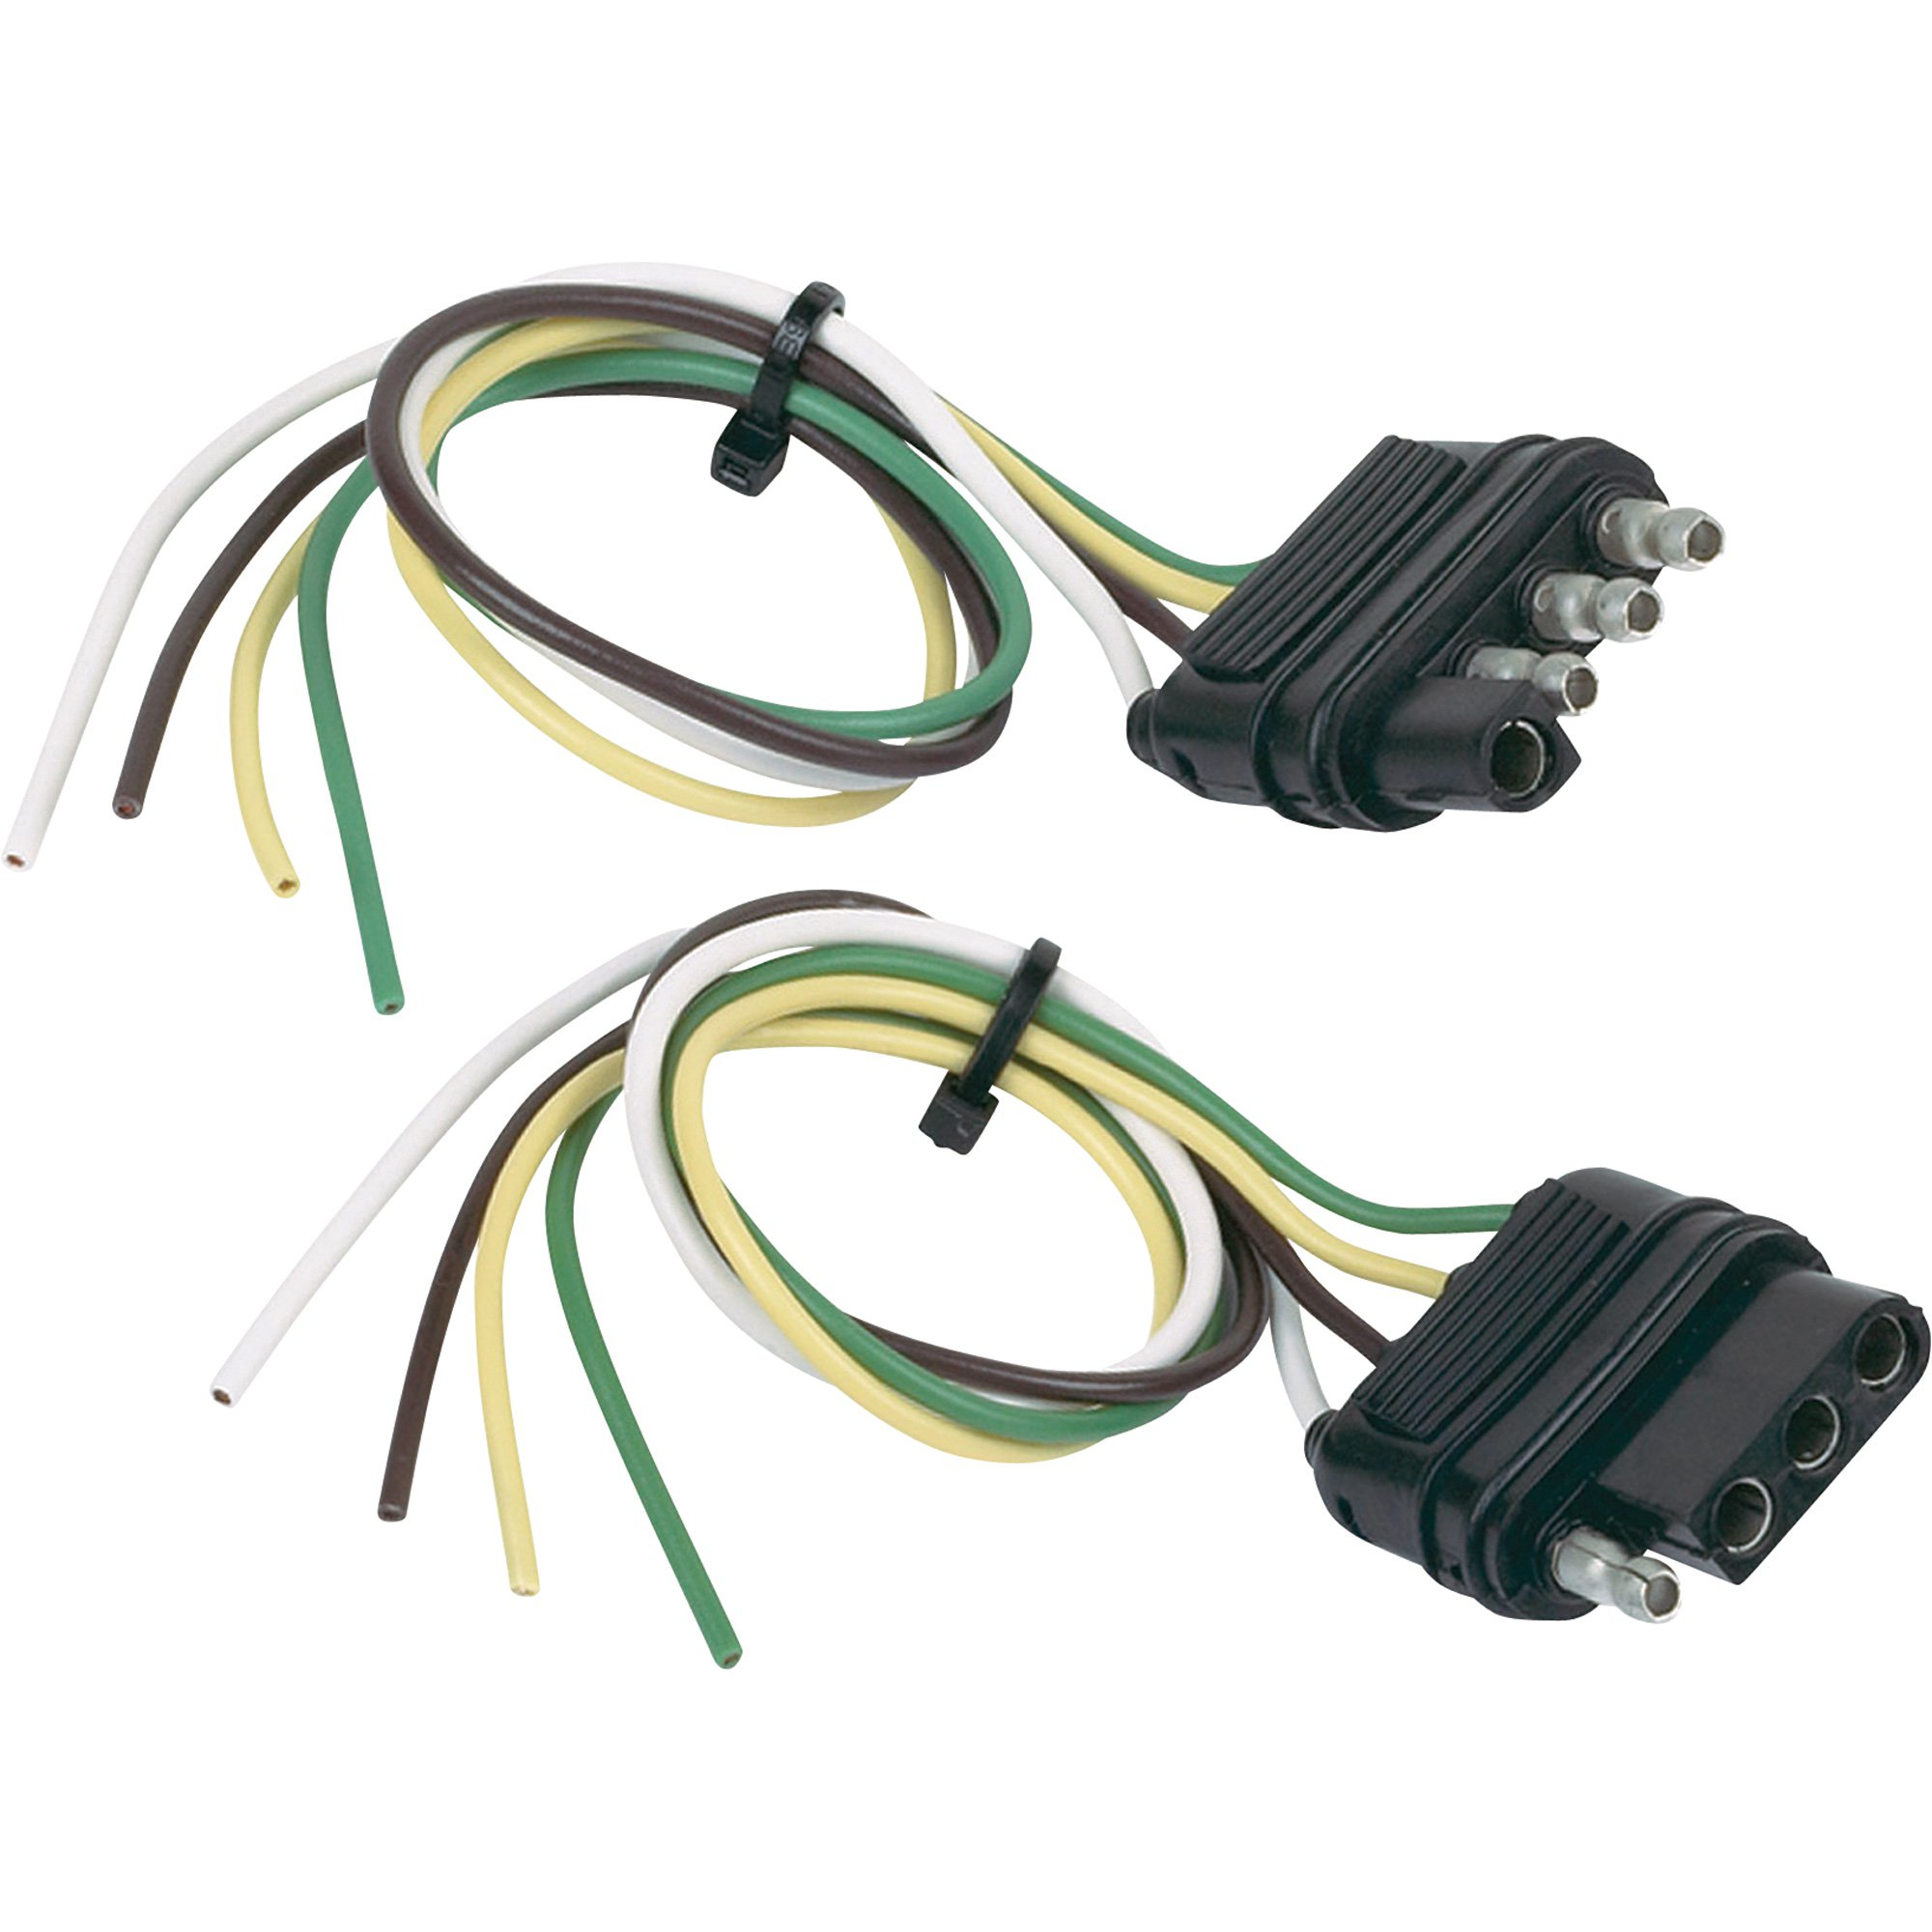 Hopkins Towing Solutions 4-Wire Flat Trailer Wiring Connector Set - Trailer Wiring Diagram 4 Wire